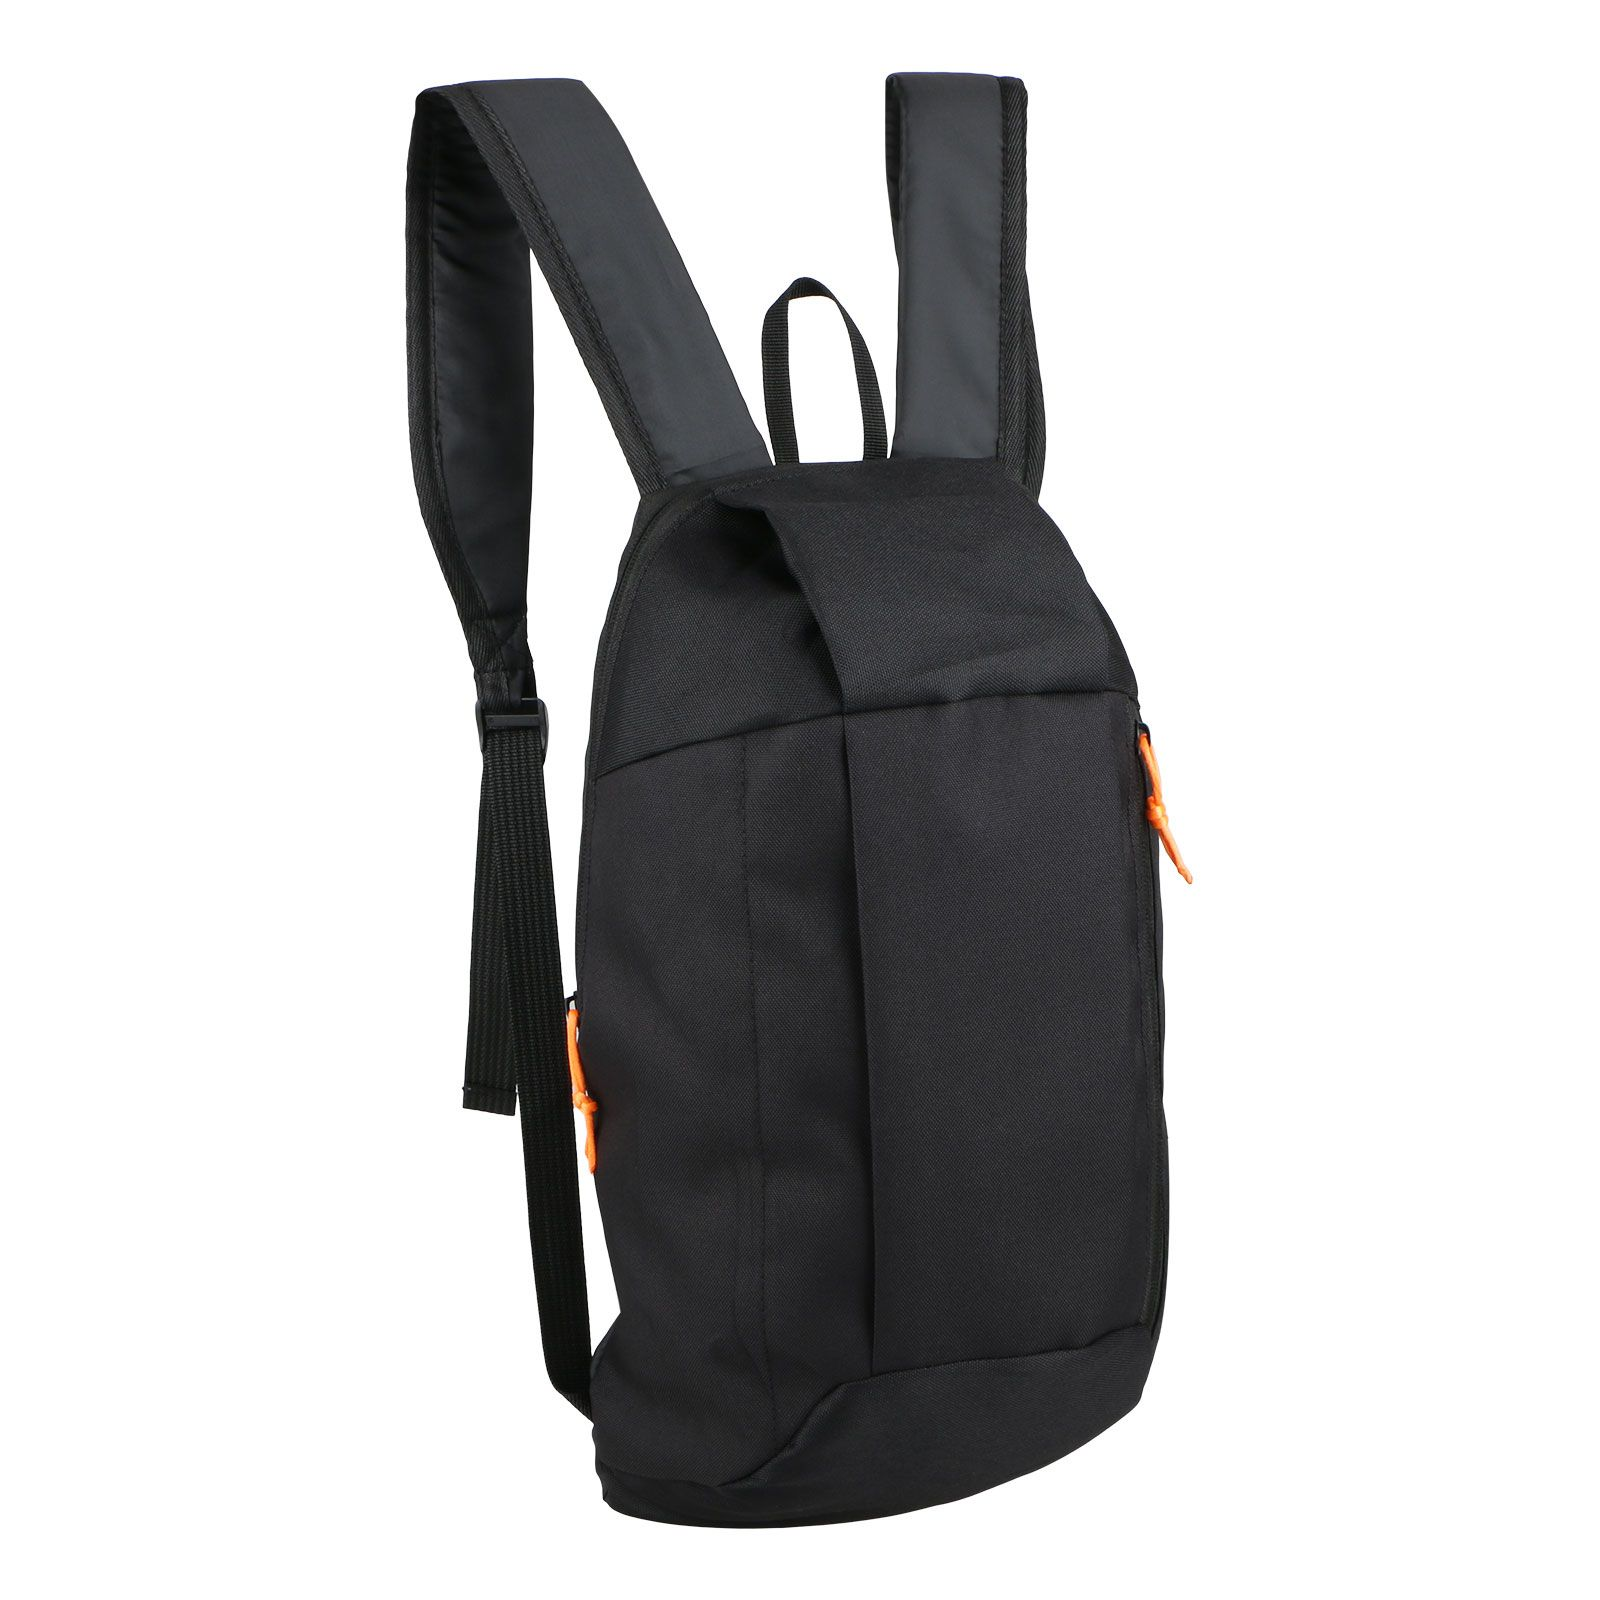 5a37174db17e Unisex Lightweight Sports Backpack Hiking Rucksack Schoolbags ...